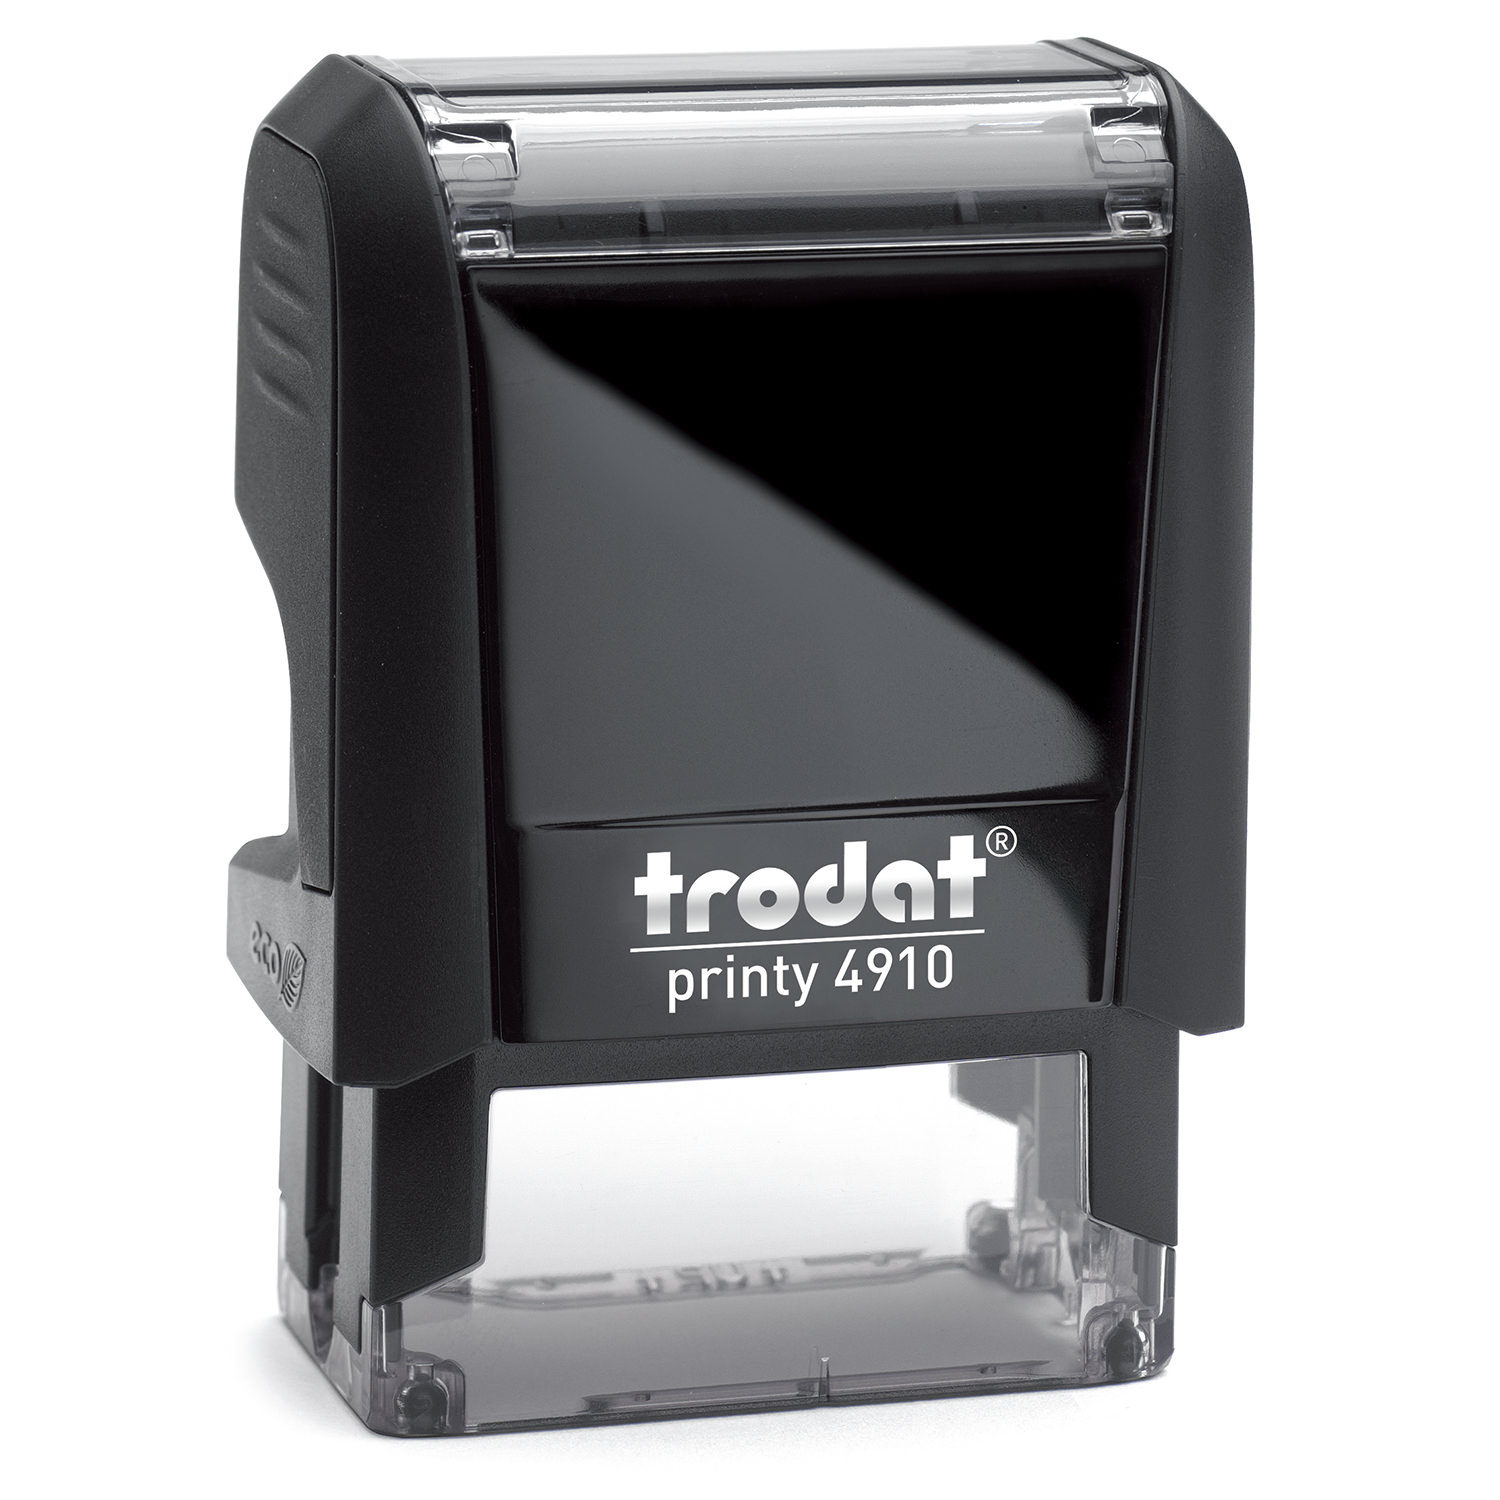 Customize and order your Trodat Printy 4910